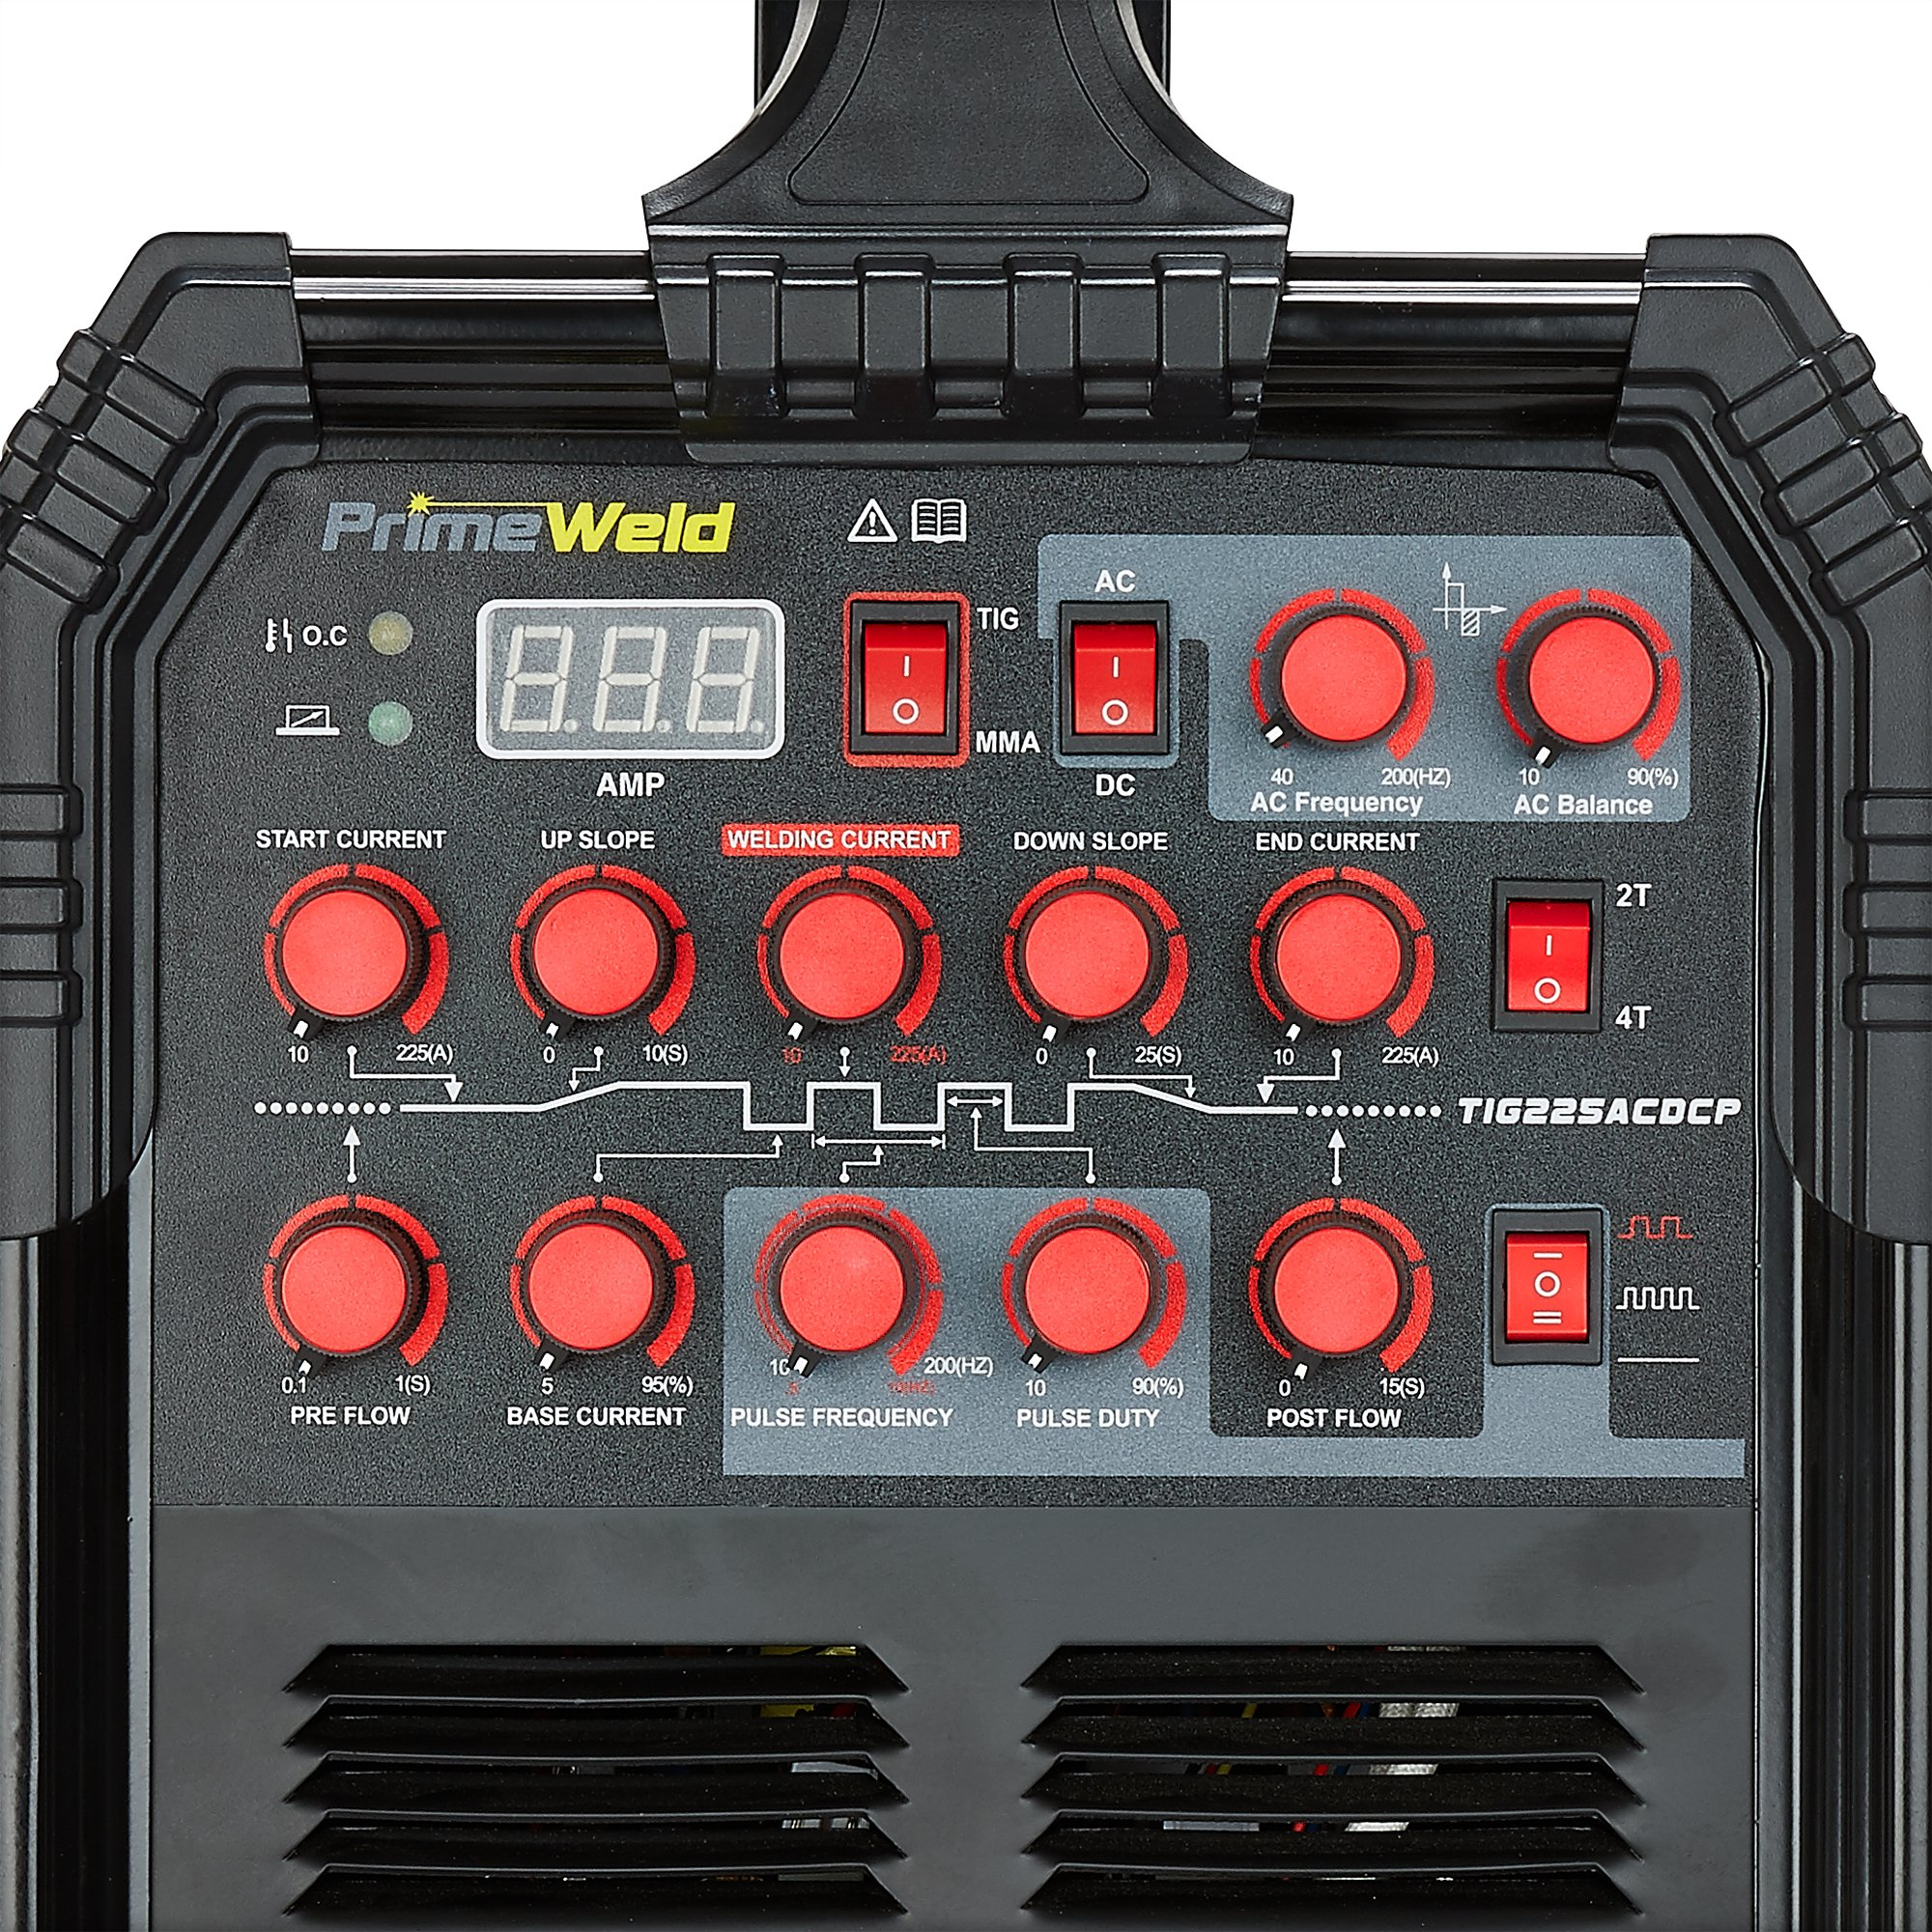 PRIMEWELD TIG225X 225 Amp IGBT AC DC Tig/Stick Welder with Pulse CK17 Flex Torch and Cable 3 Year Warranty by PRIMEWELD (Image #3)